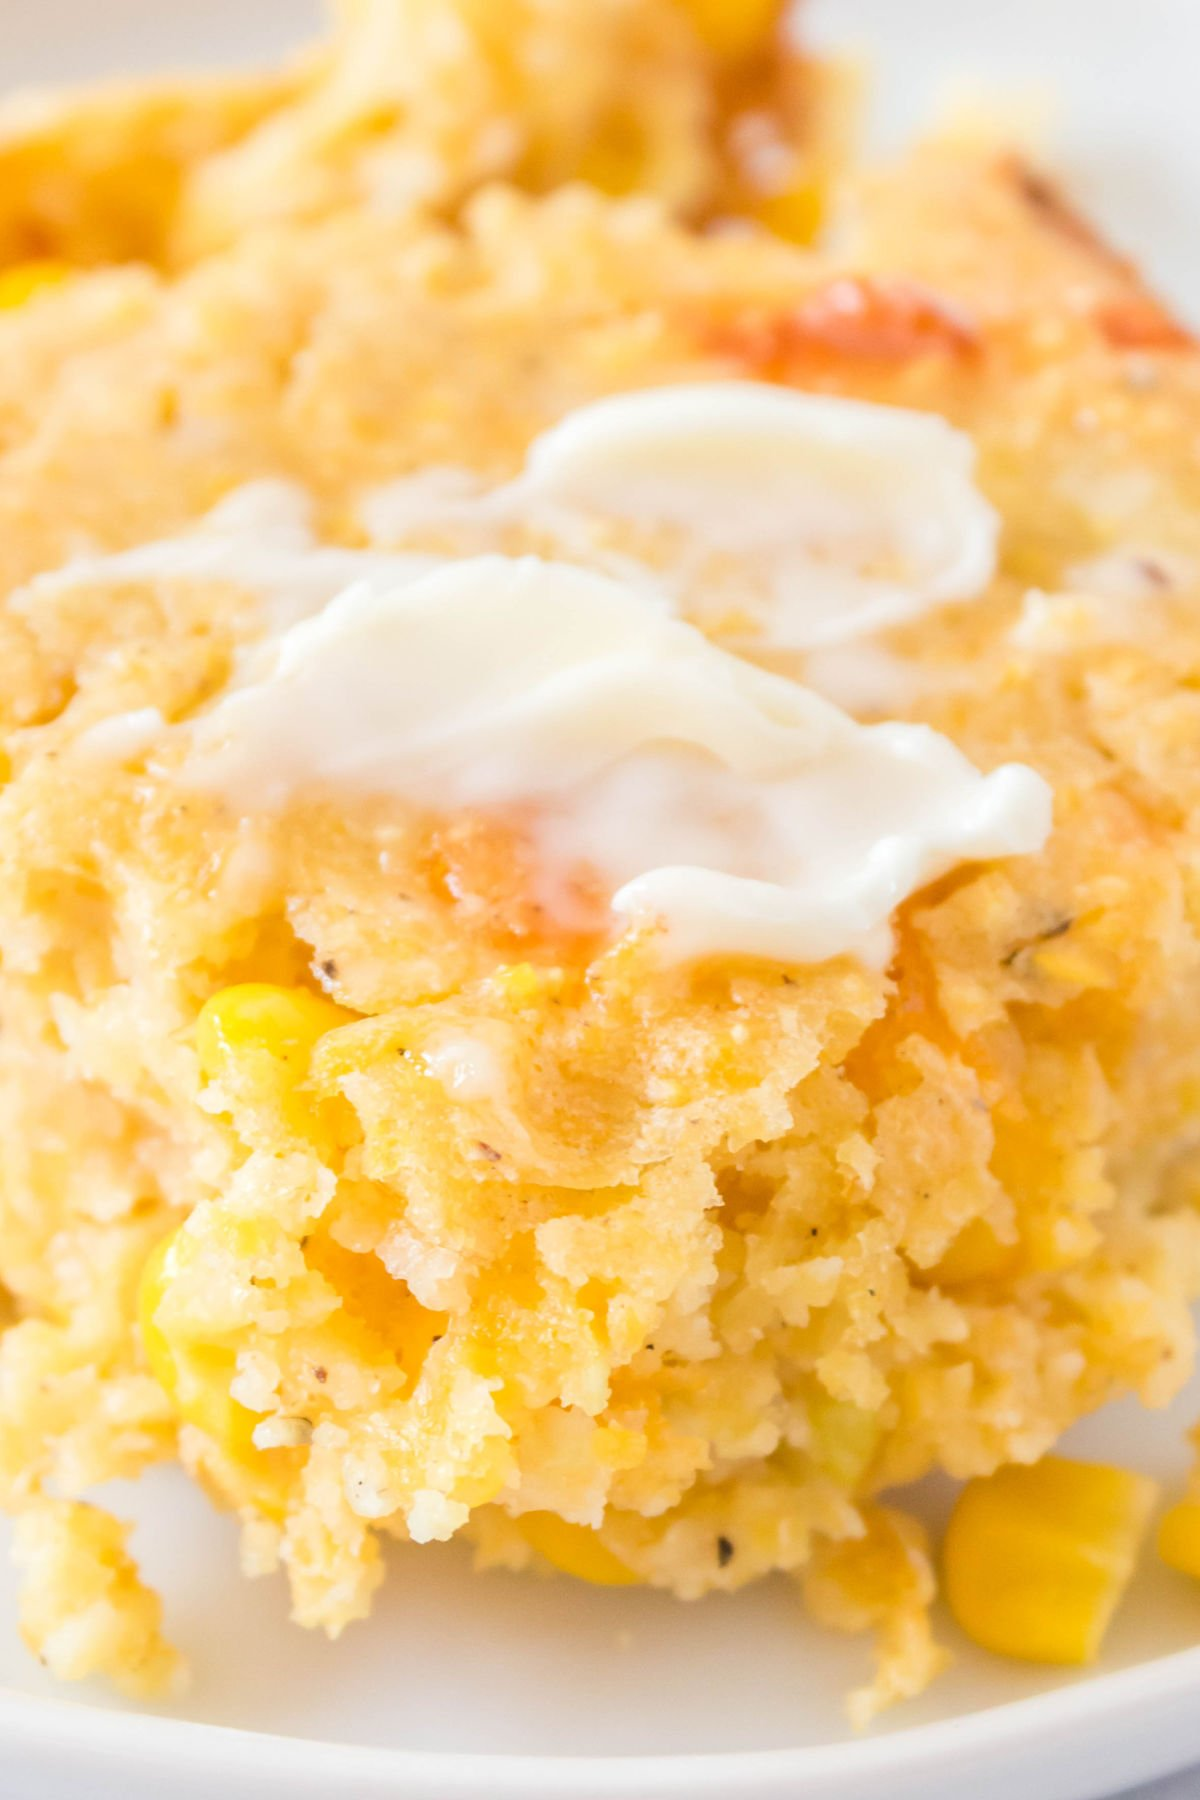 Easy Cornbread Casserole with Cheese is a comforting side dish for entertaining and busy weeknights! It's quick to whip together and so delicious! via @foodfolksandfun